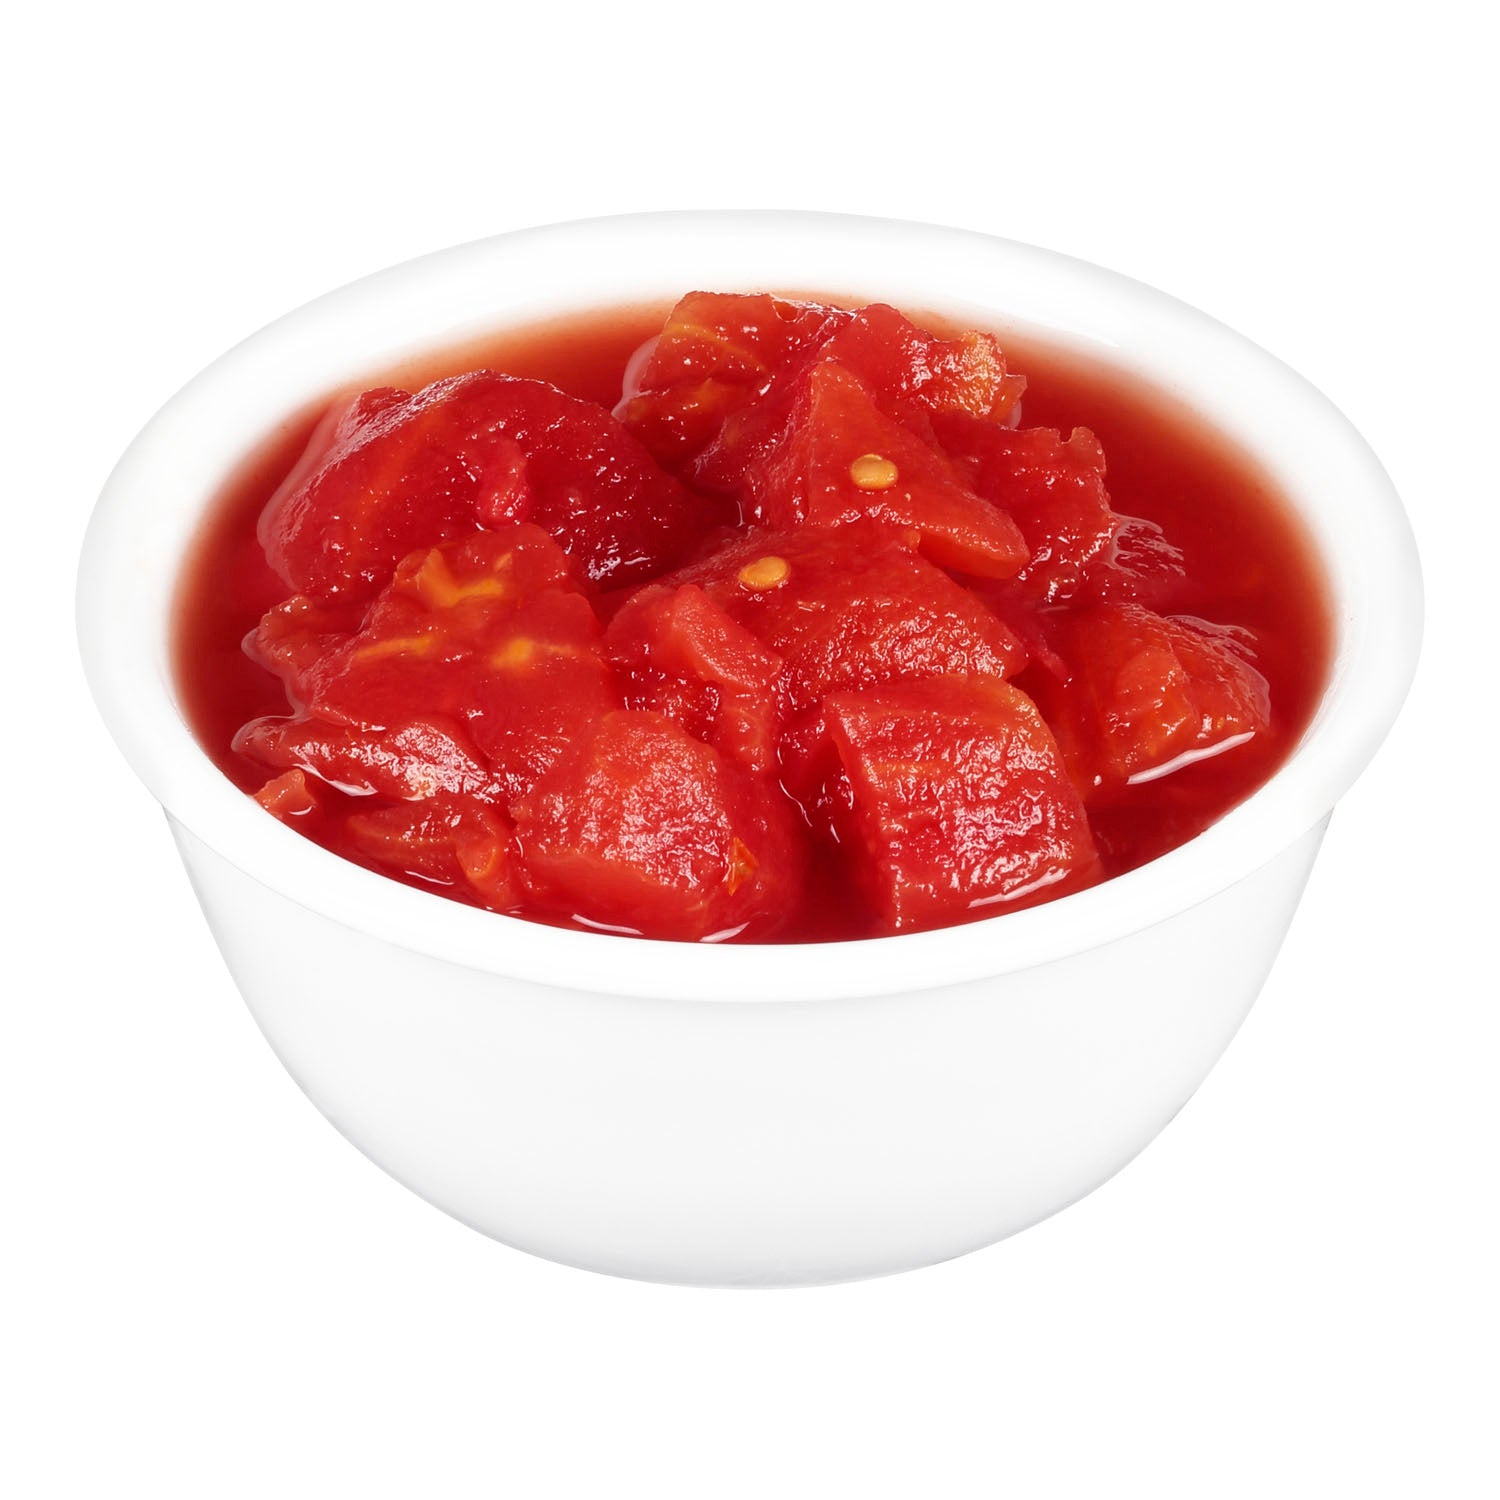 Sysco Imperial Diced Tomato in Juice 2.84 L Canadian - 6 Pack [$6.58/can]